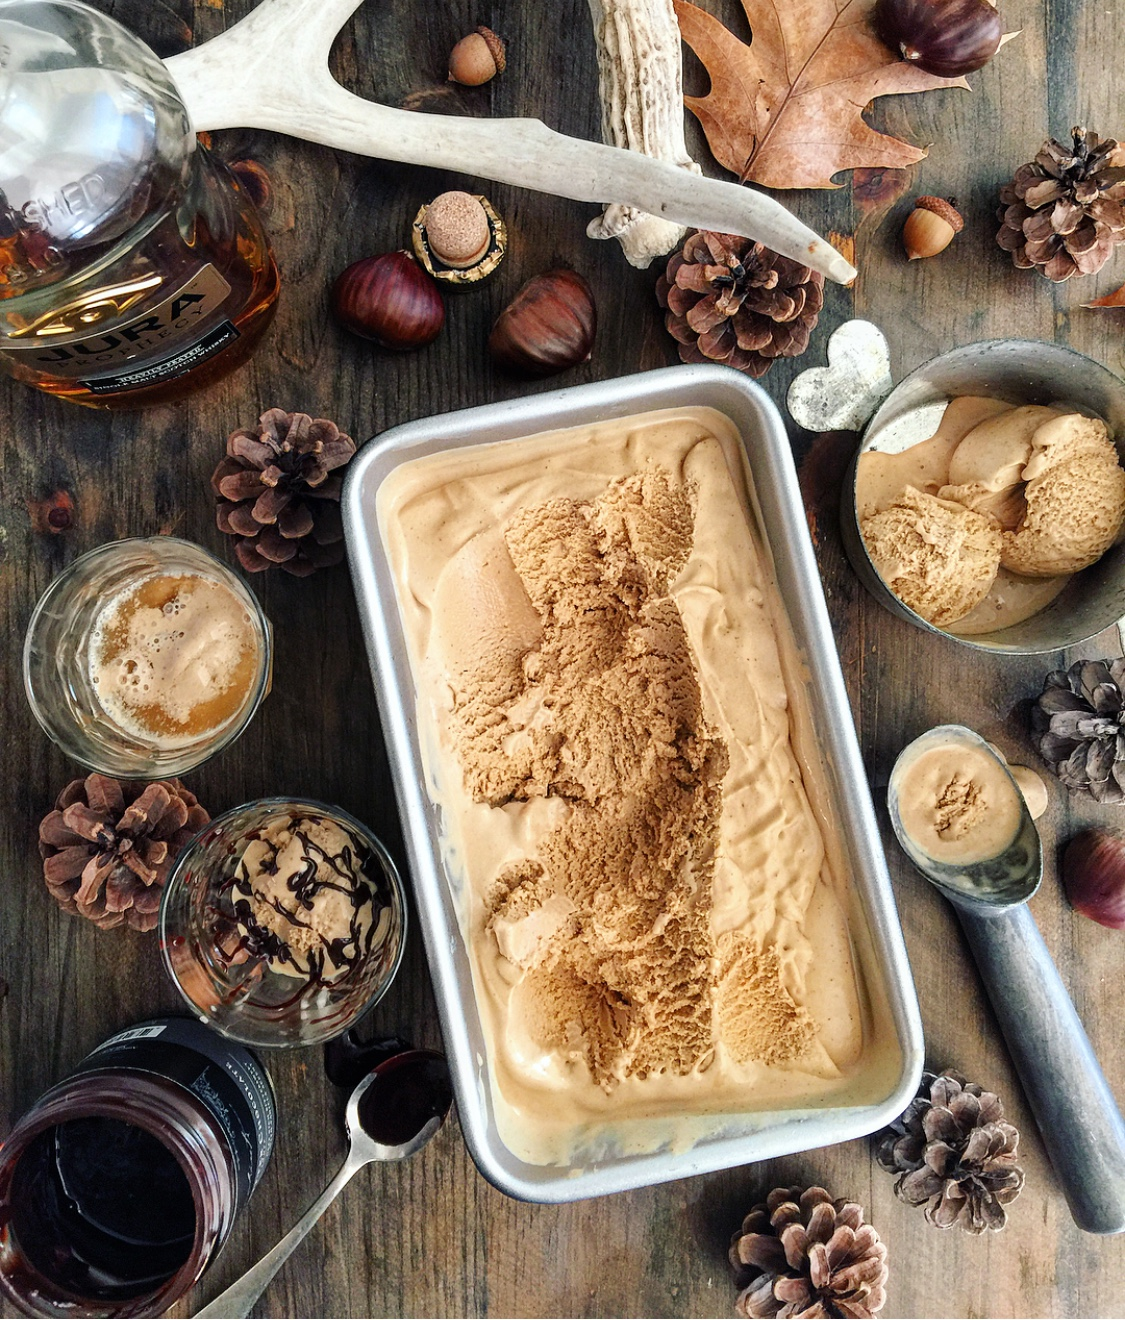 Roasted Chestnut Ice Cream